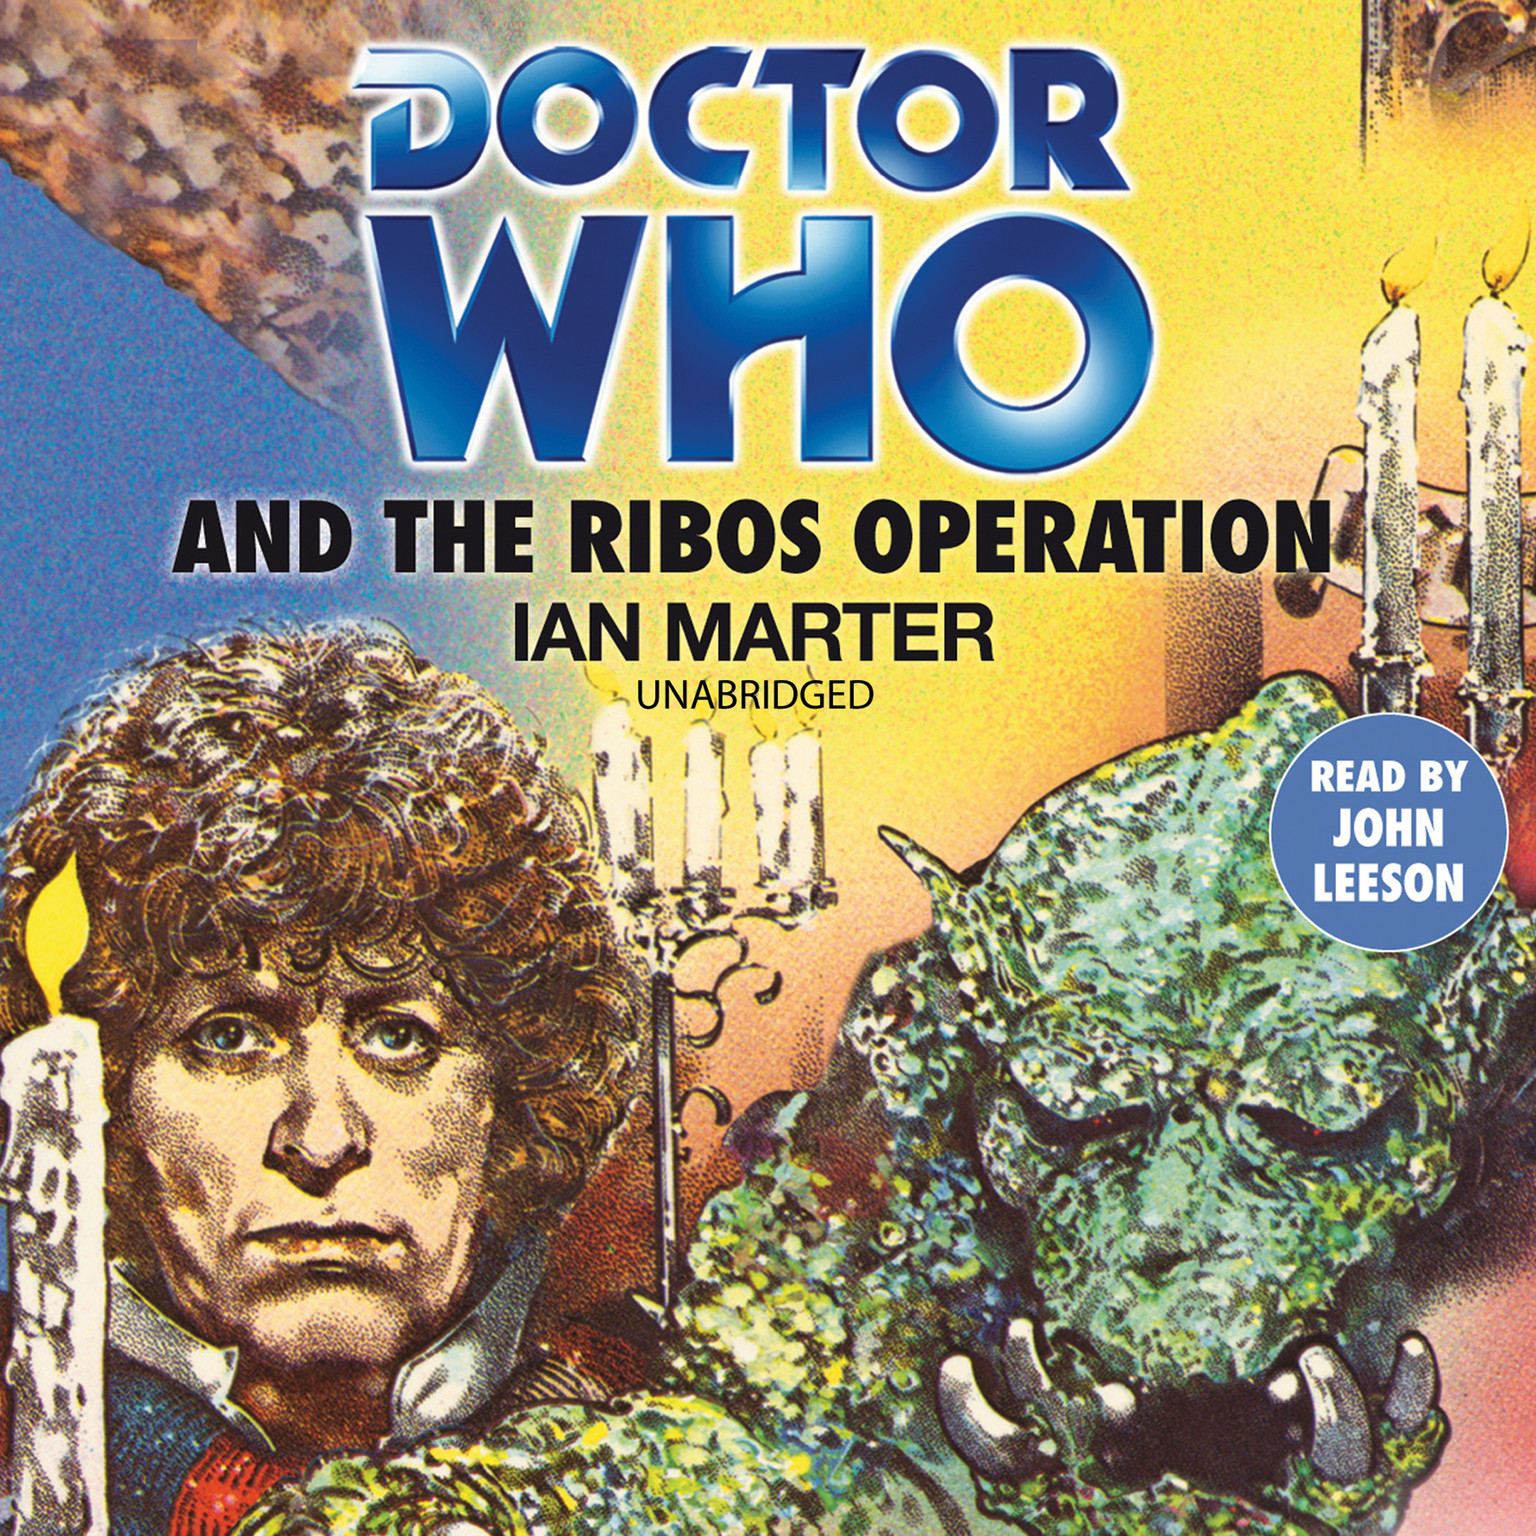 Printable Doctor Who and the Ribos Operation Audiobook Cover Art